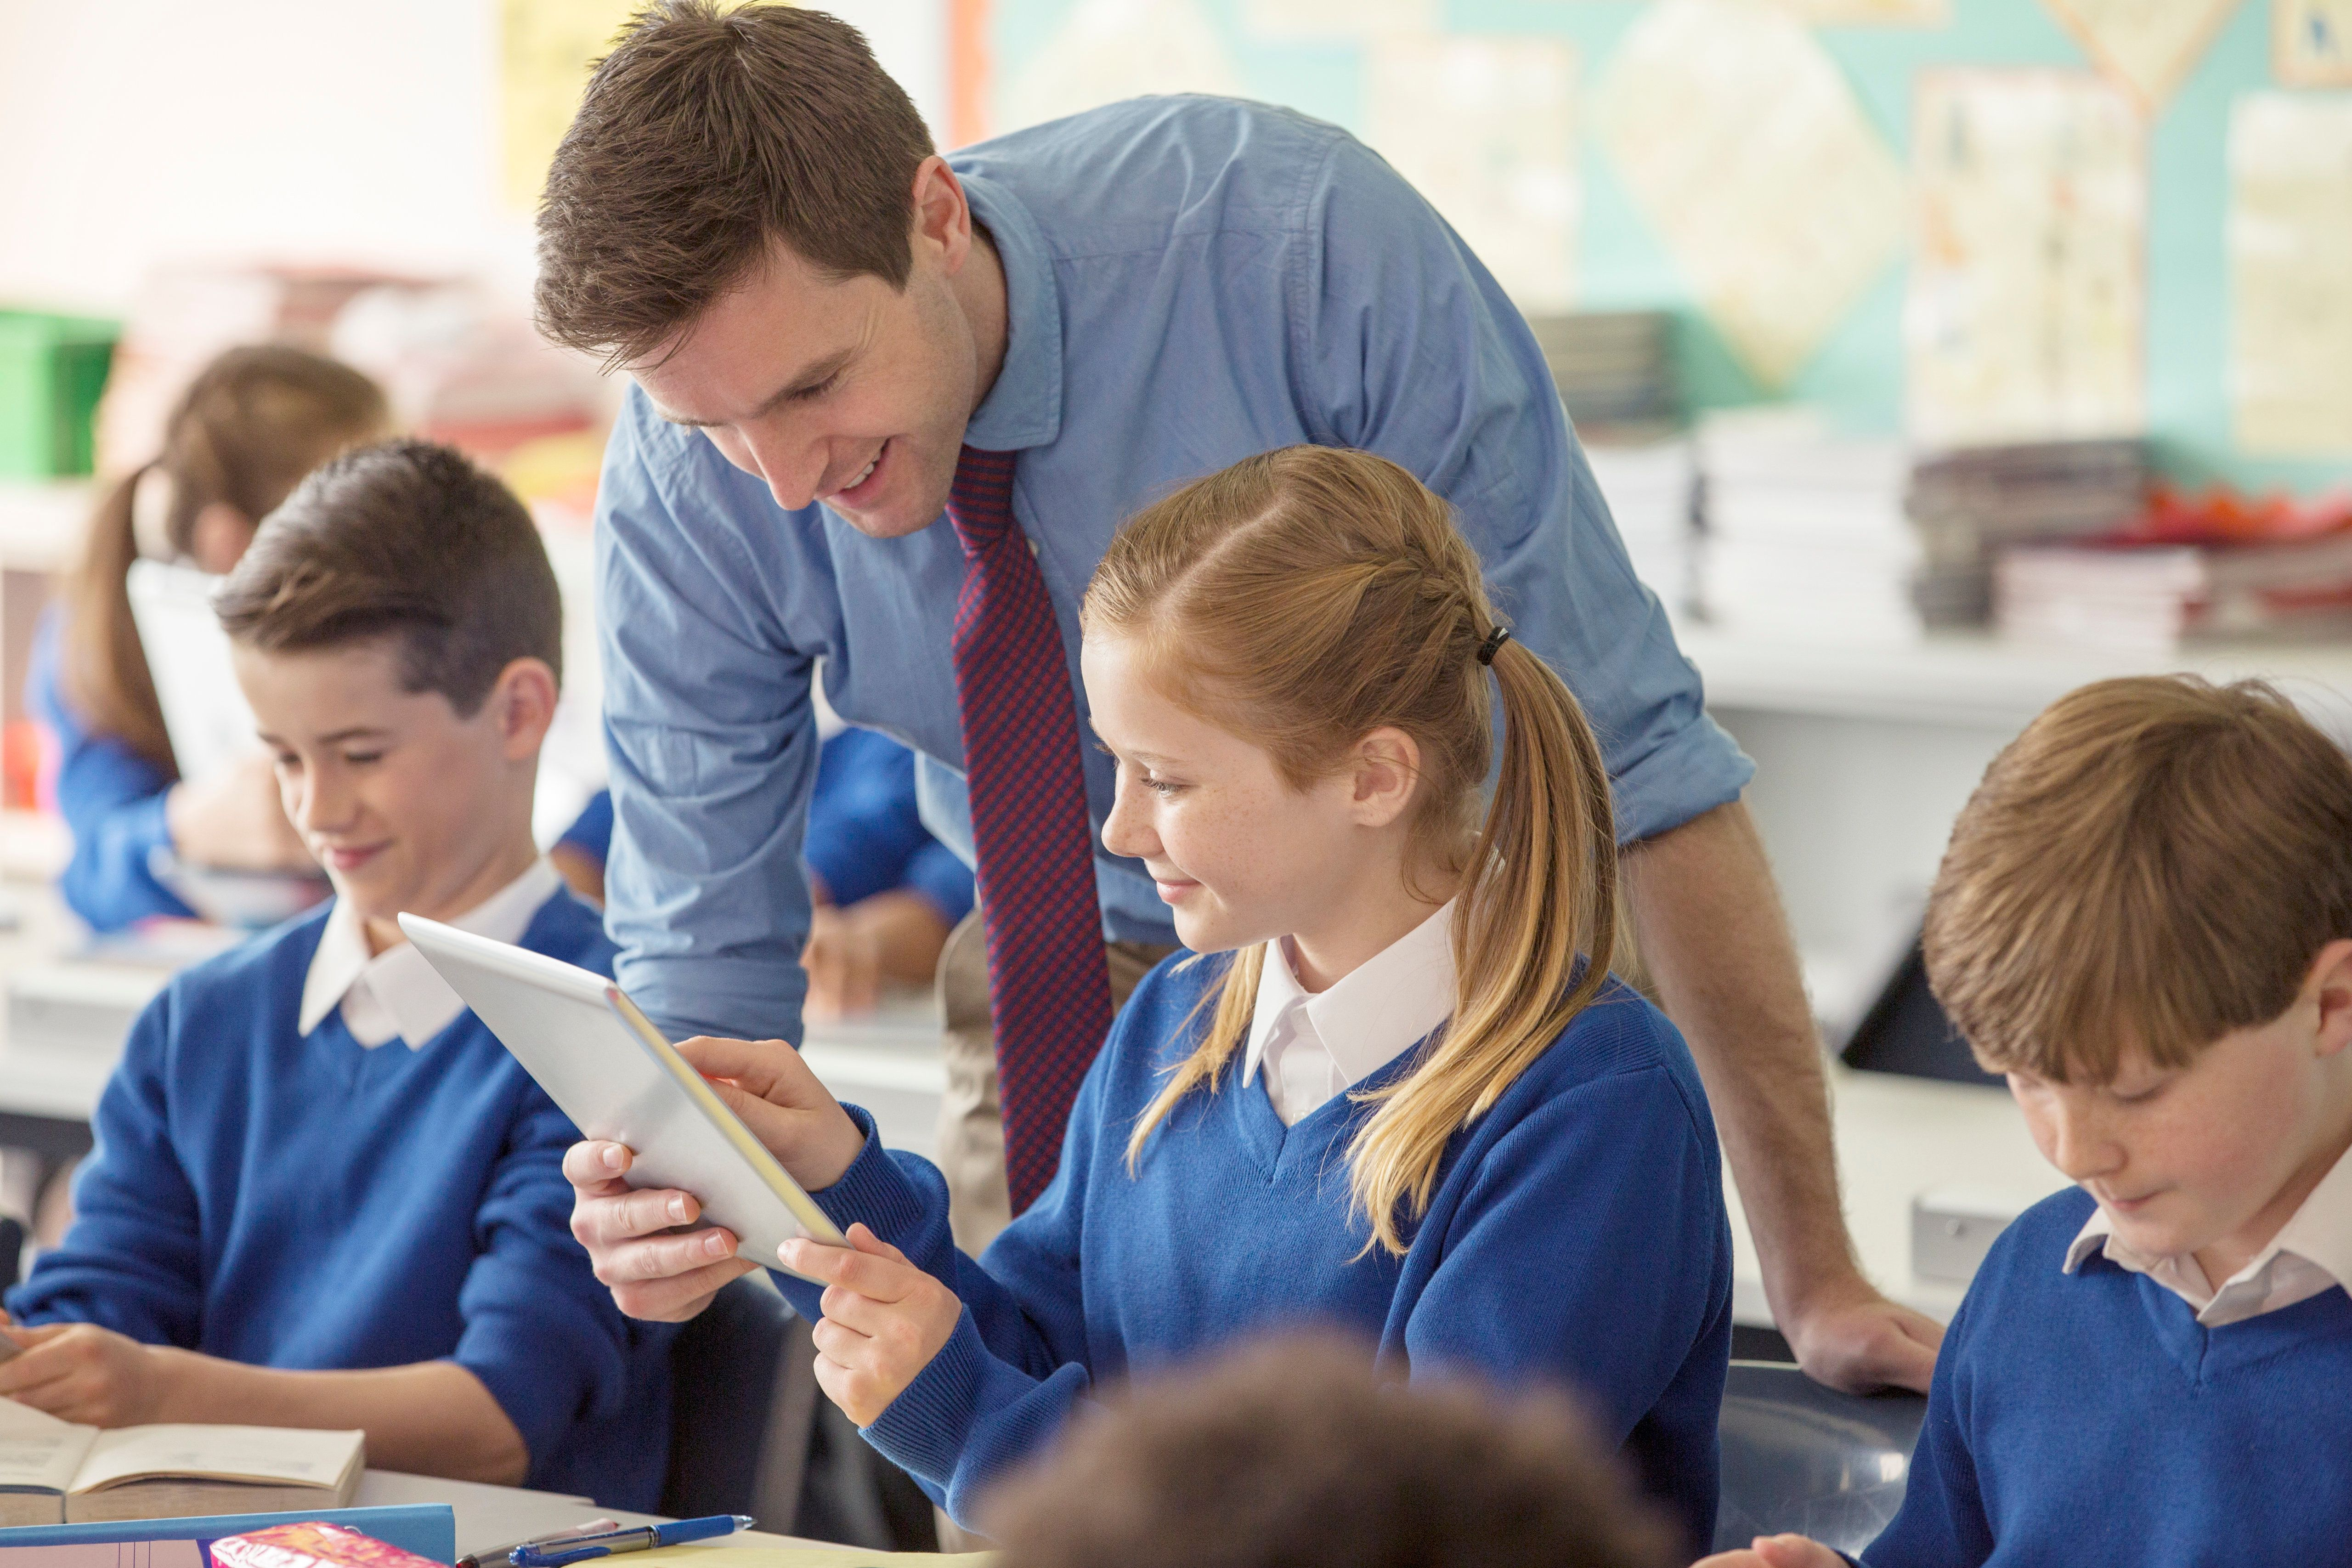 'Forgivable fees' should be introduced for teachers, a think tank has